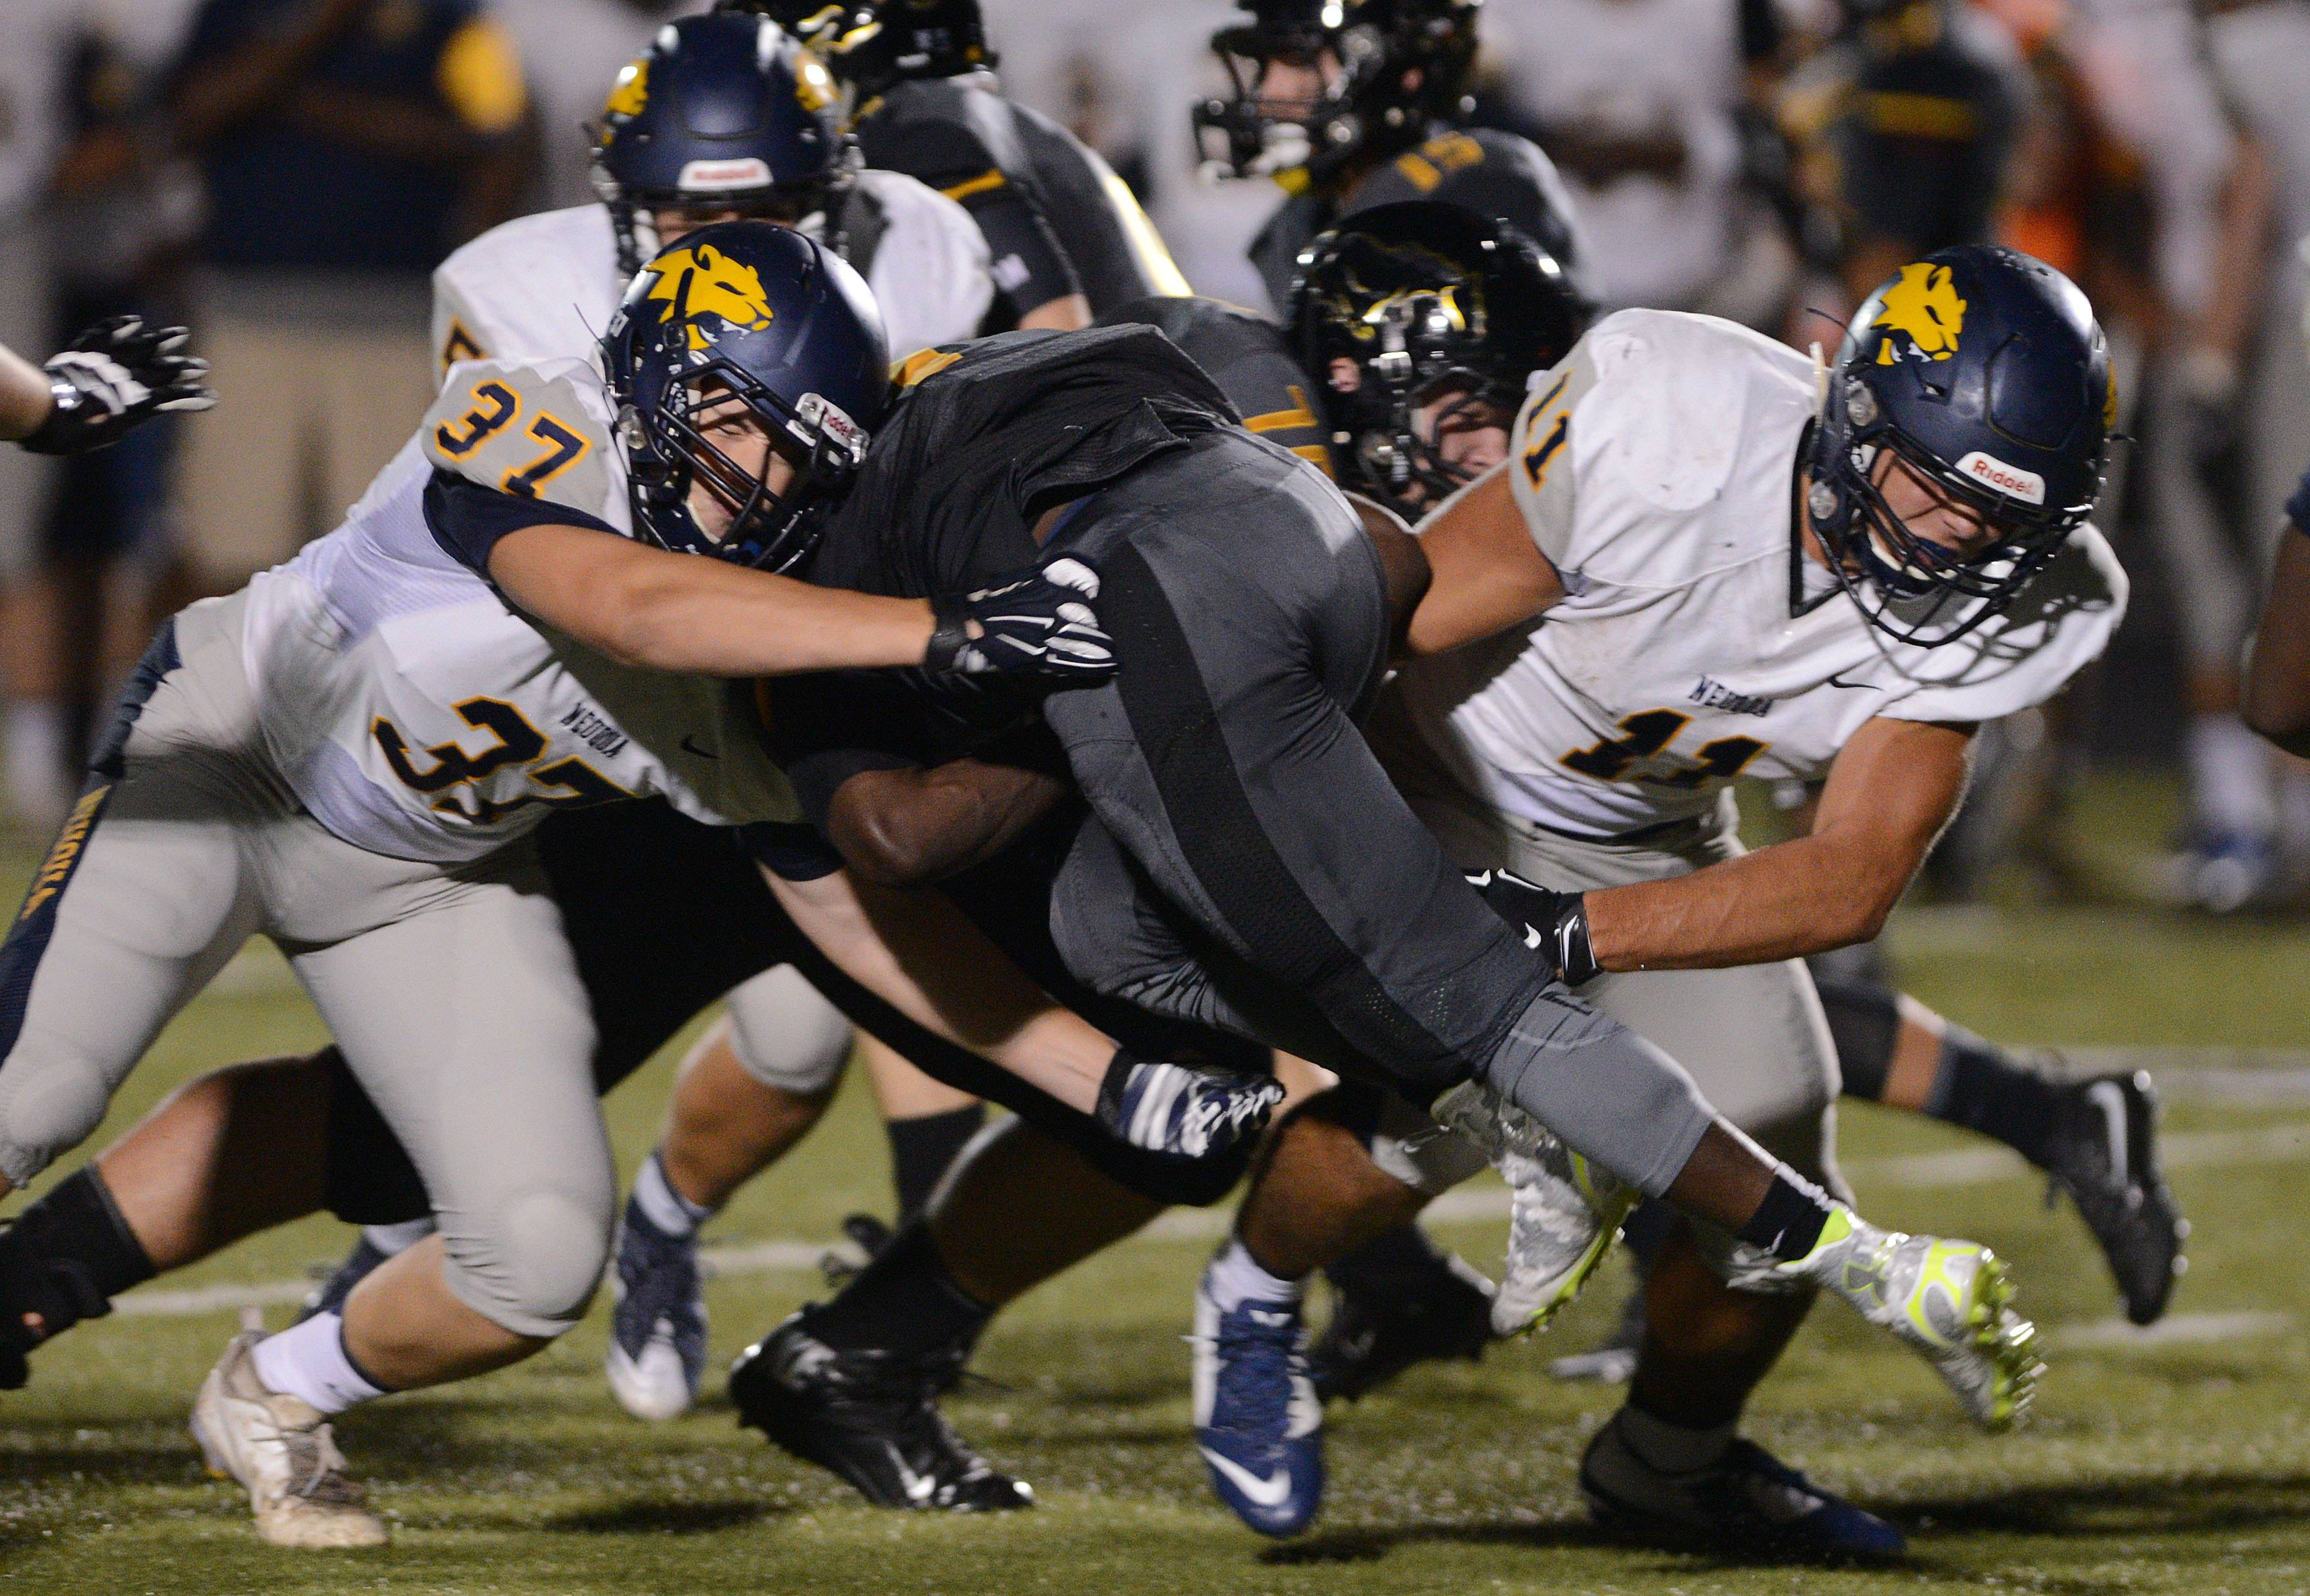 Casey Larson,left, and Jon Rhattigan of Neuqua Valley pull down a Metea Valley player.